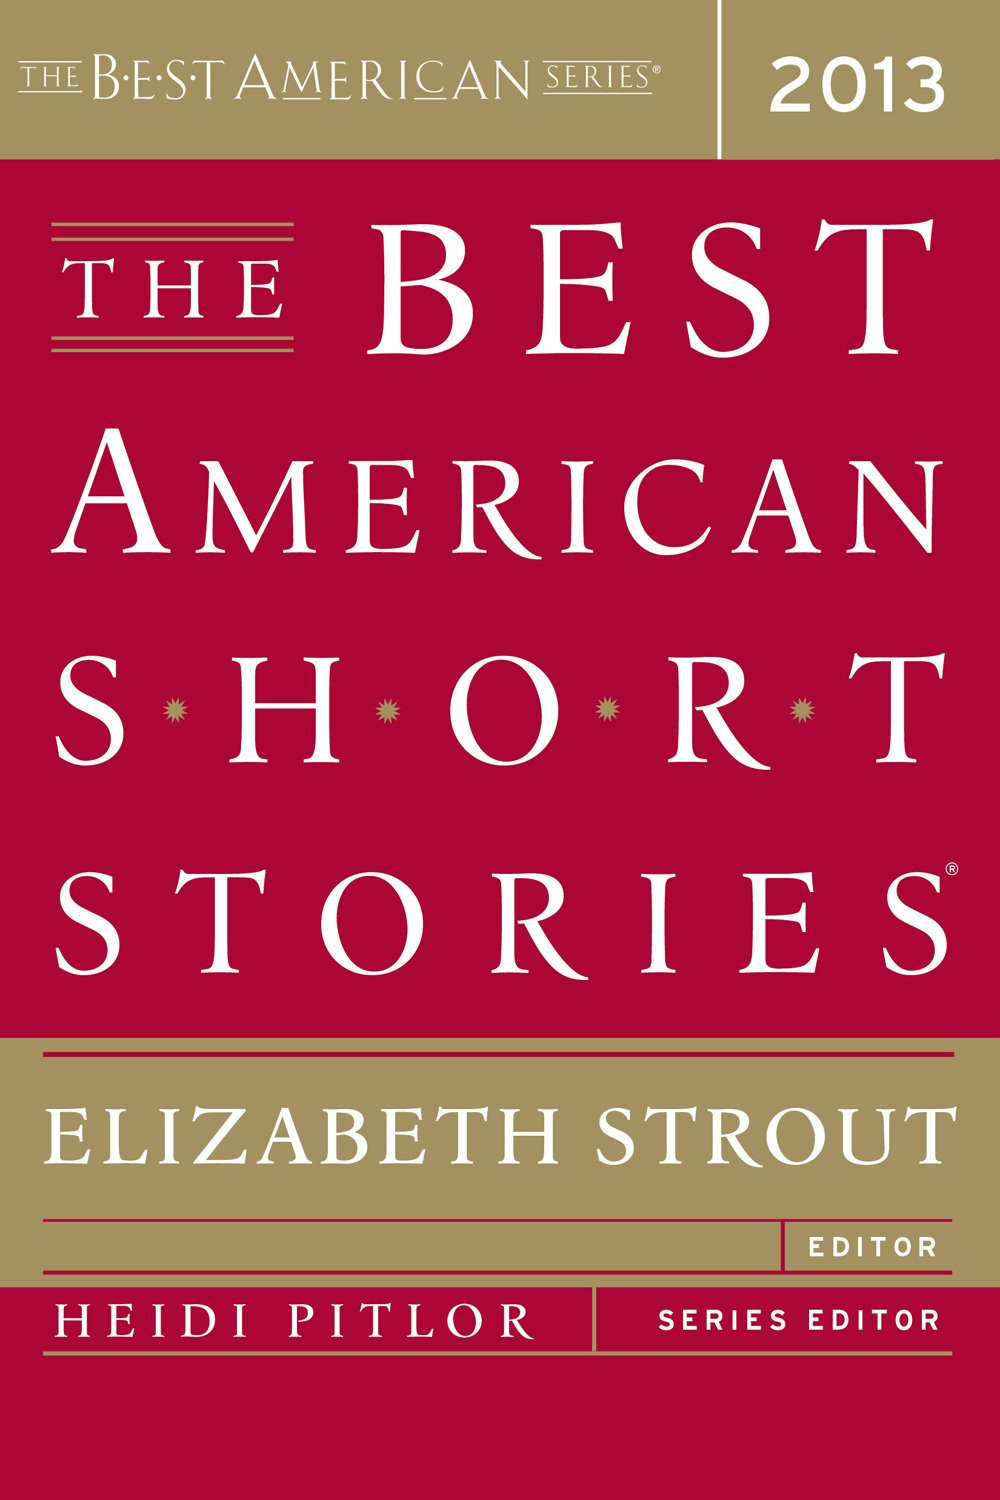 Book Review- The Best American Short Stories 2013